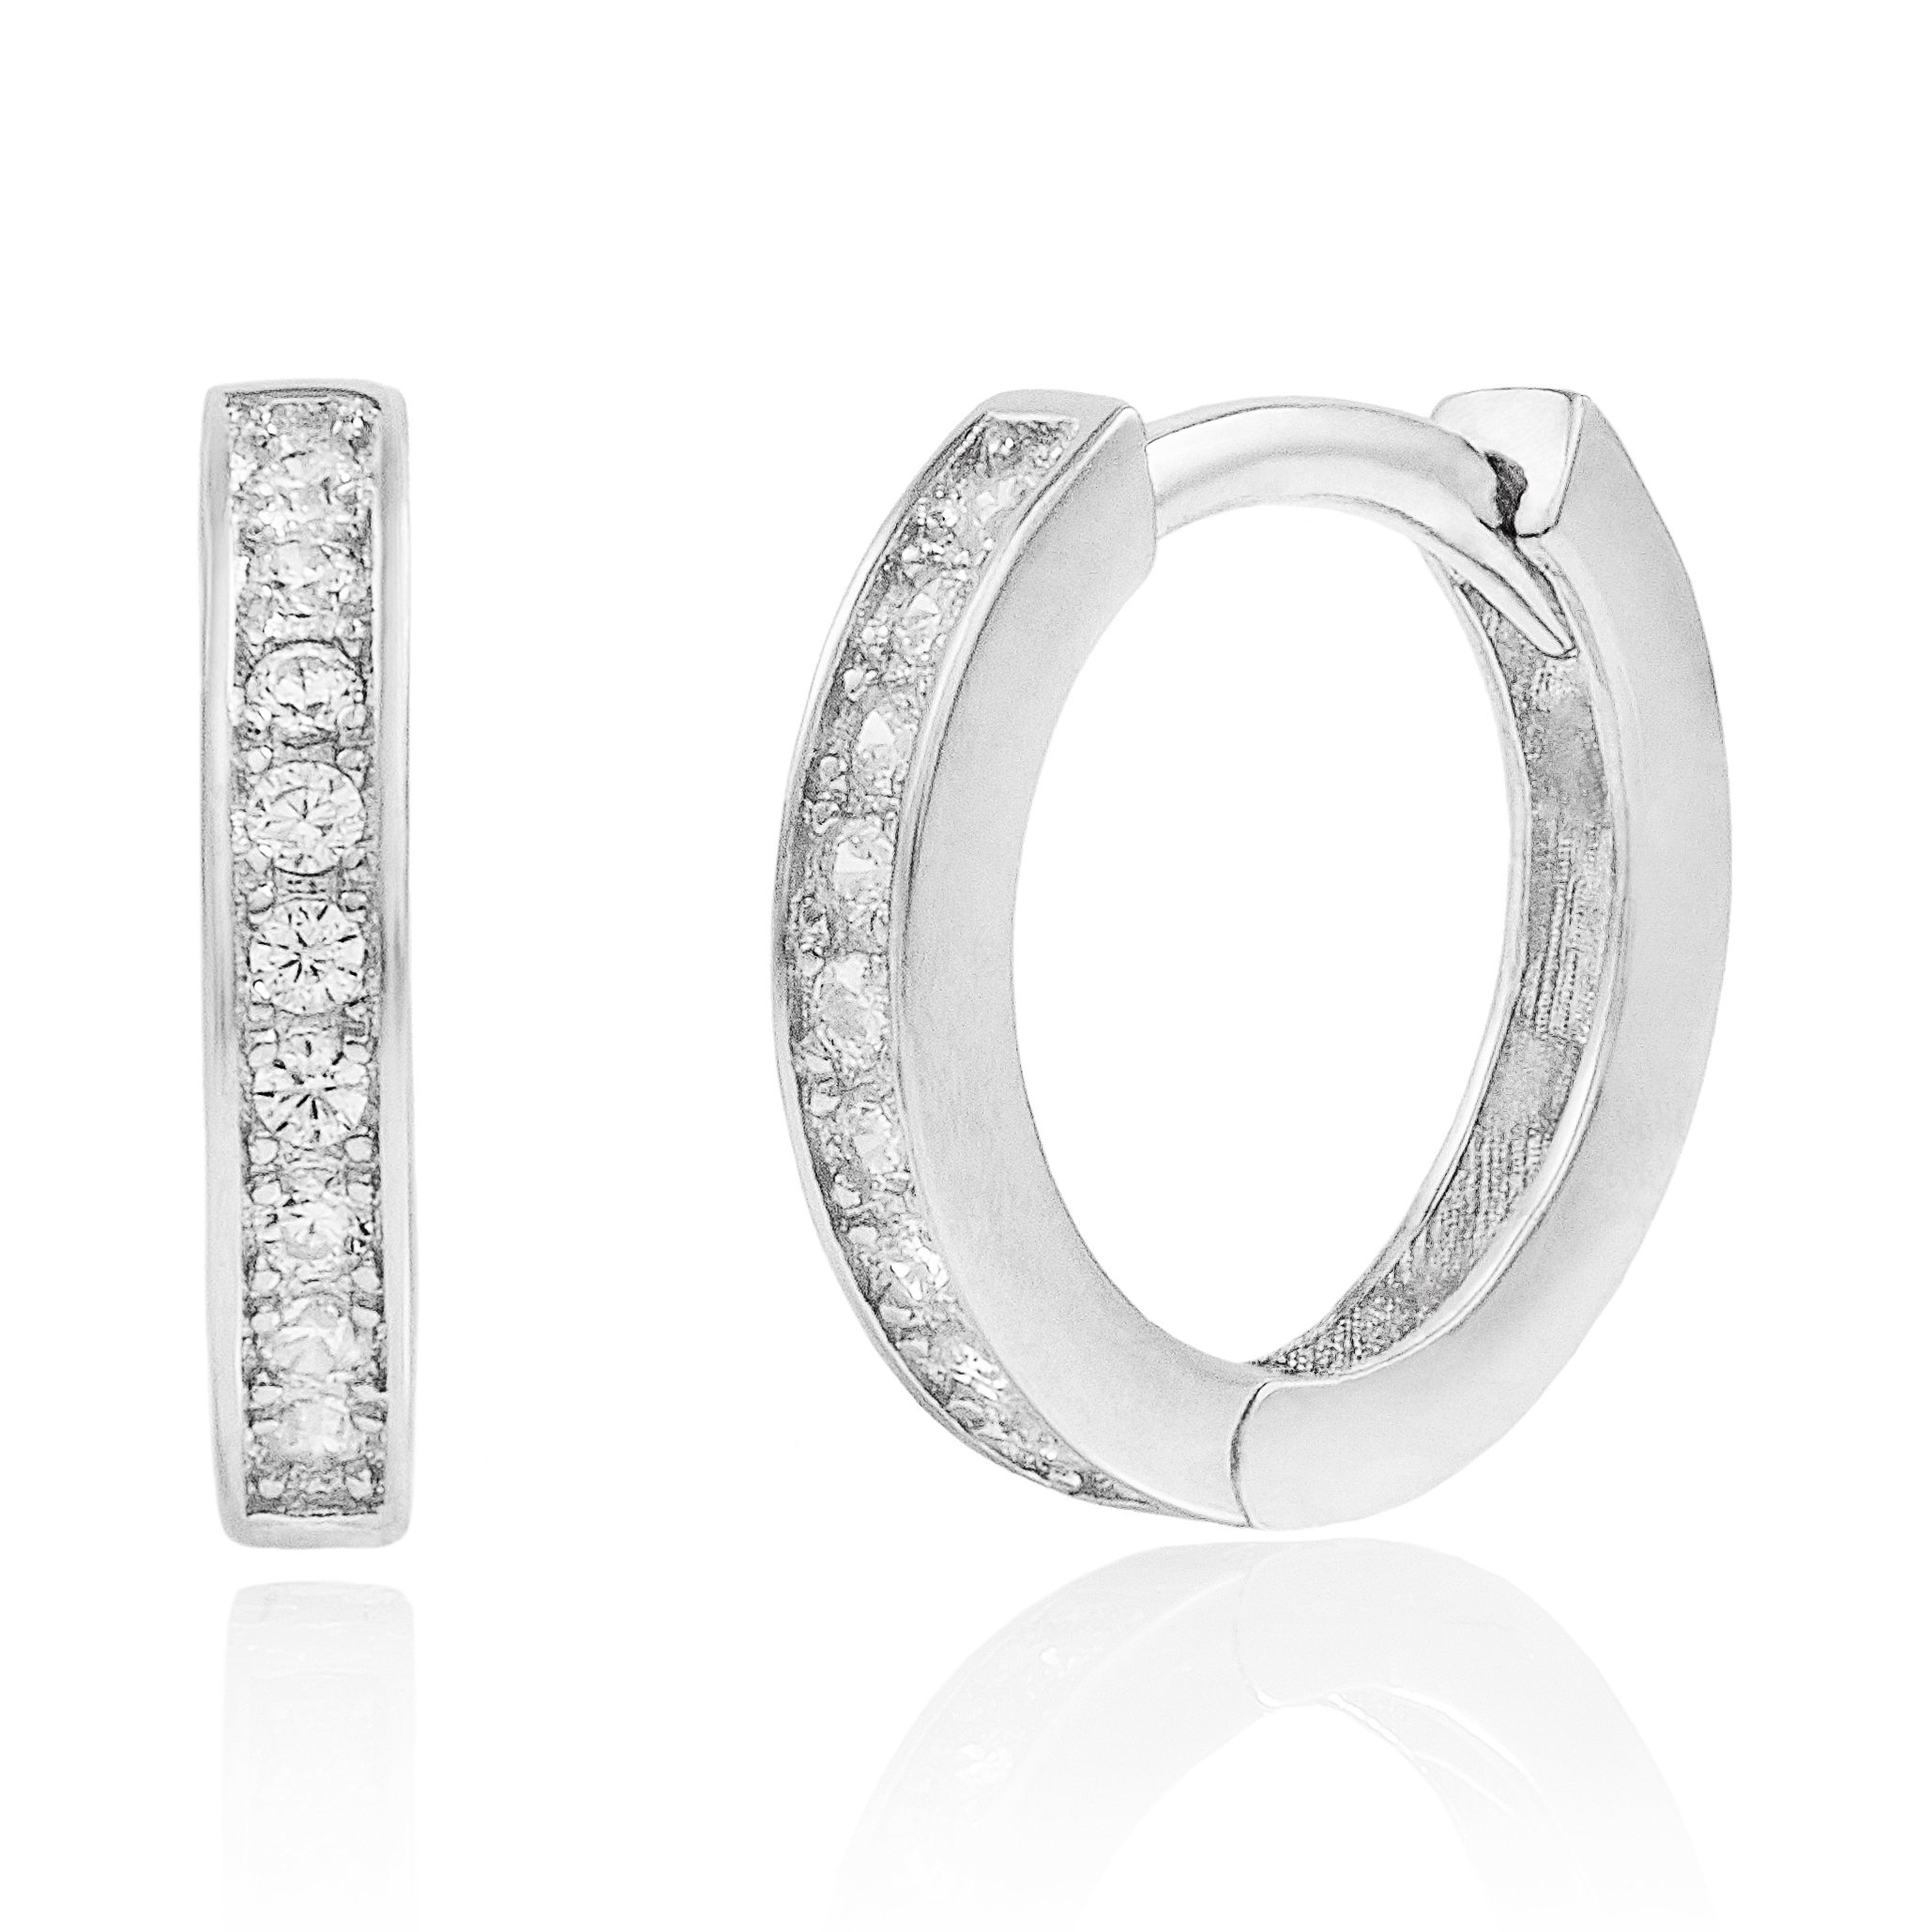 Rhodium Plated Sterling Silver Cubic Zirconia Huggie Hoop Earrings